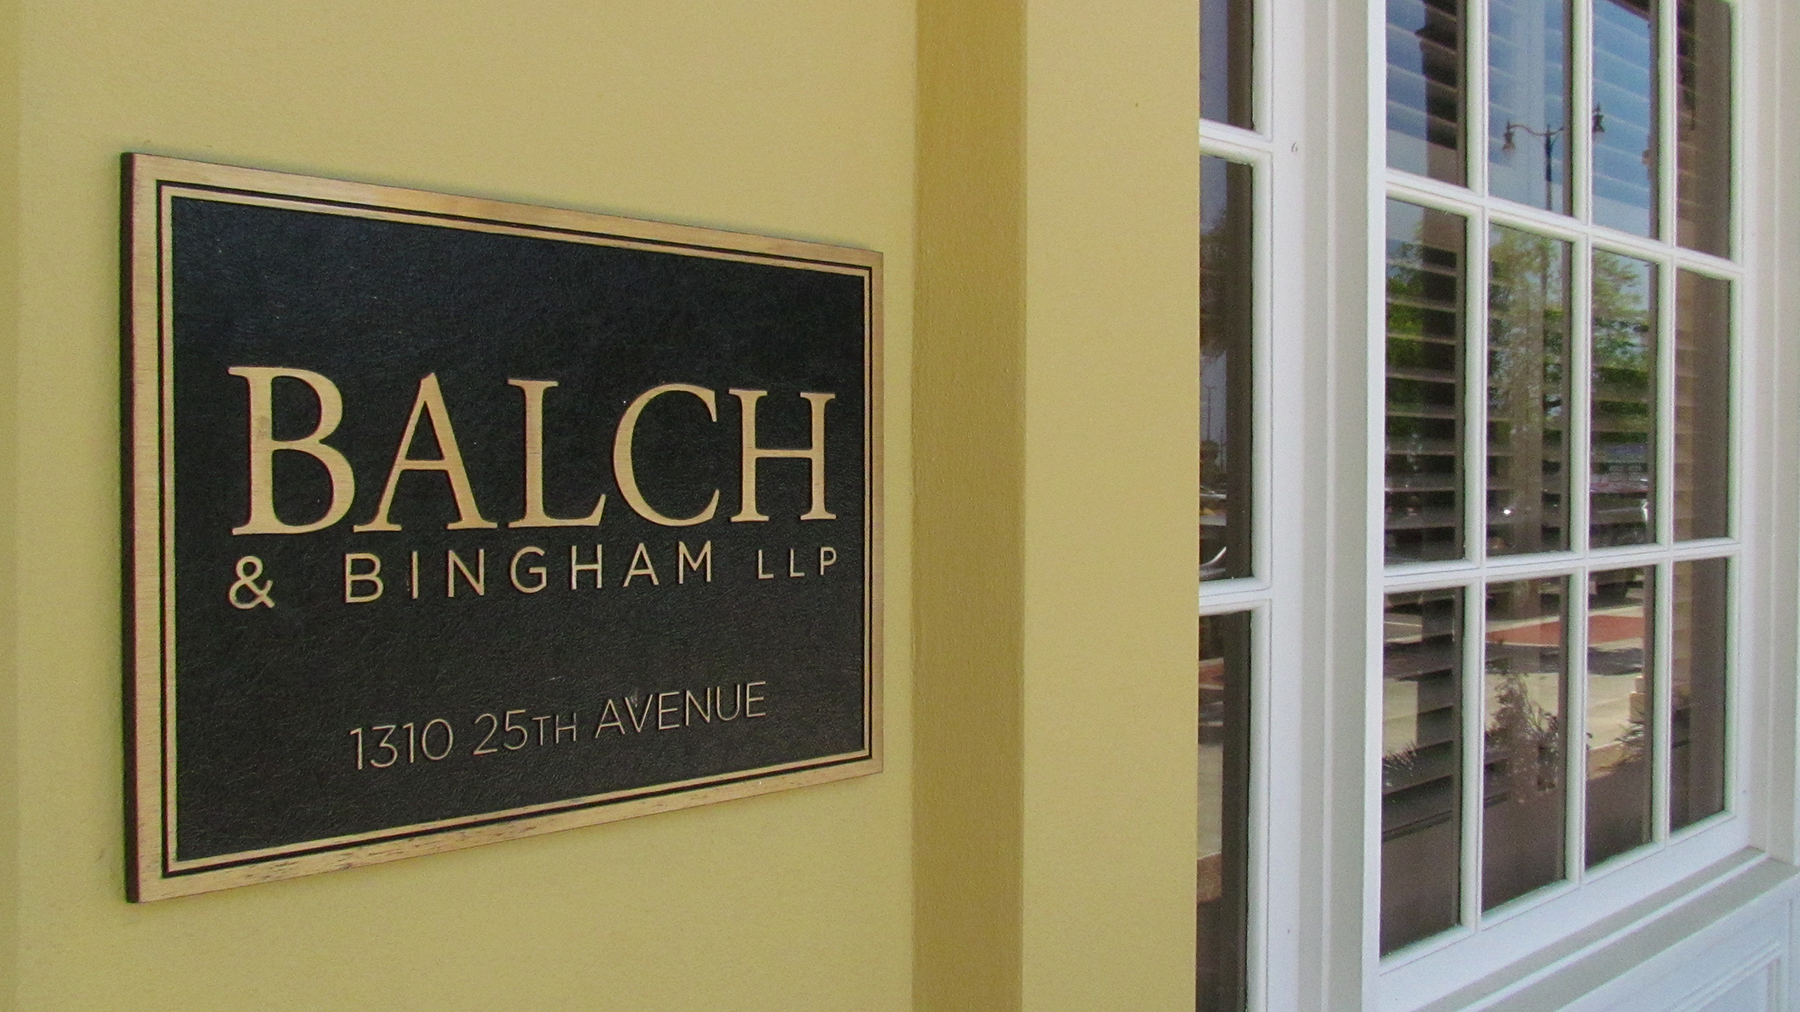 Balch and Bingham LLC